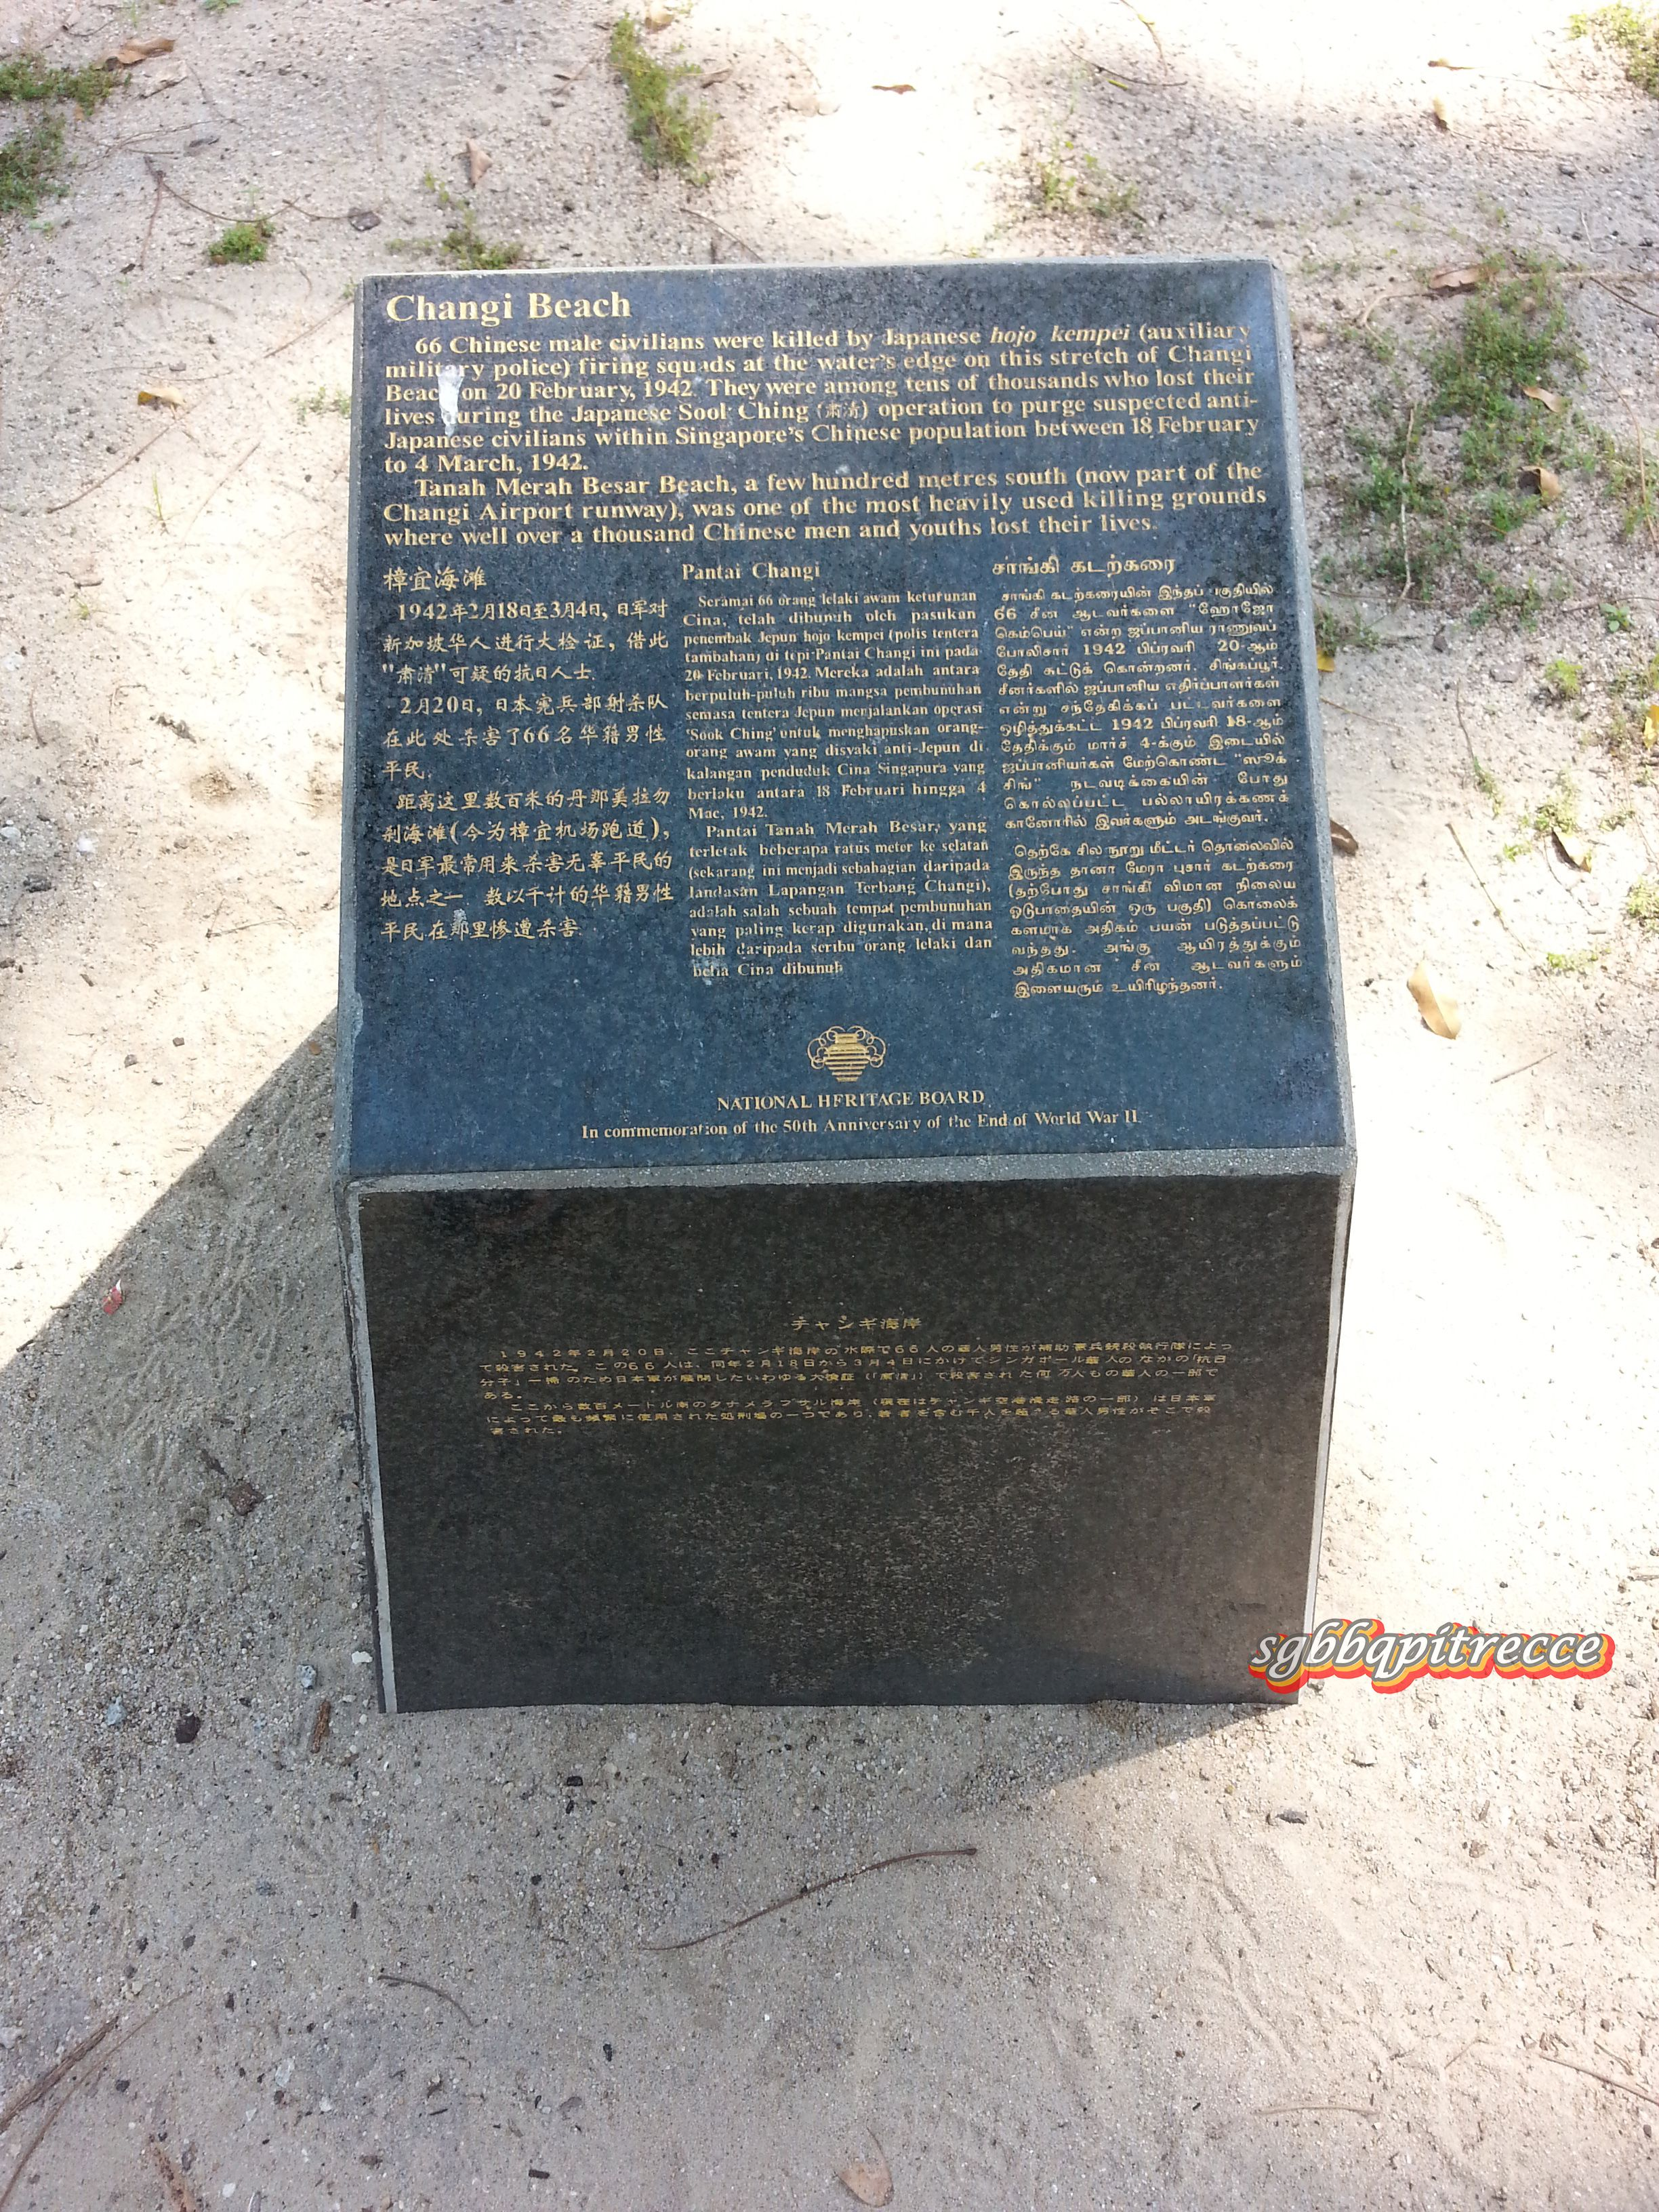 This Monument Tells The Tragic Story Of What Happened In Changi